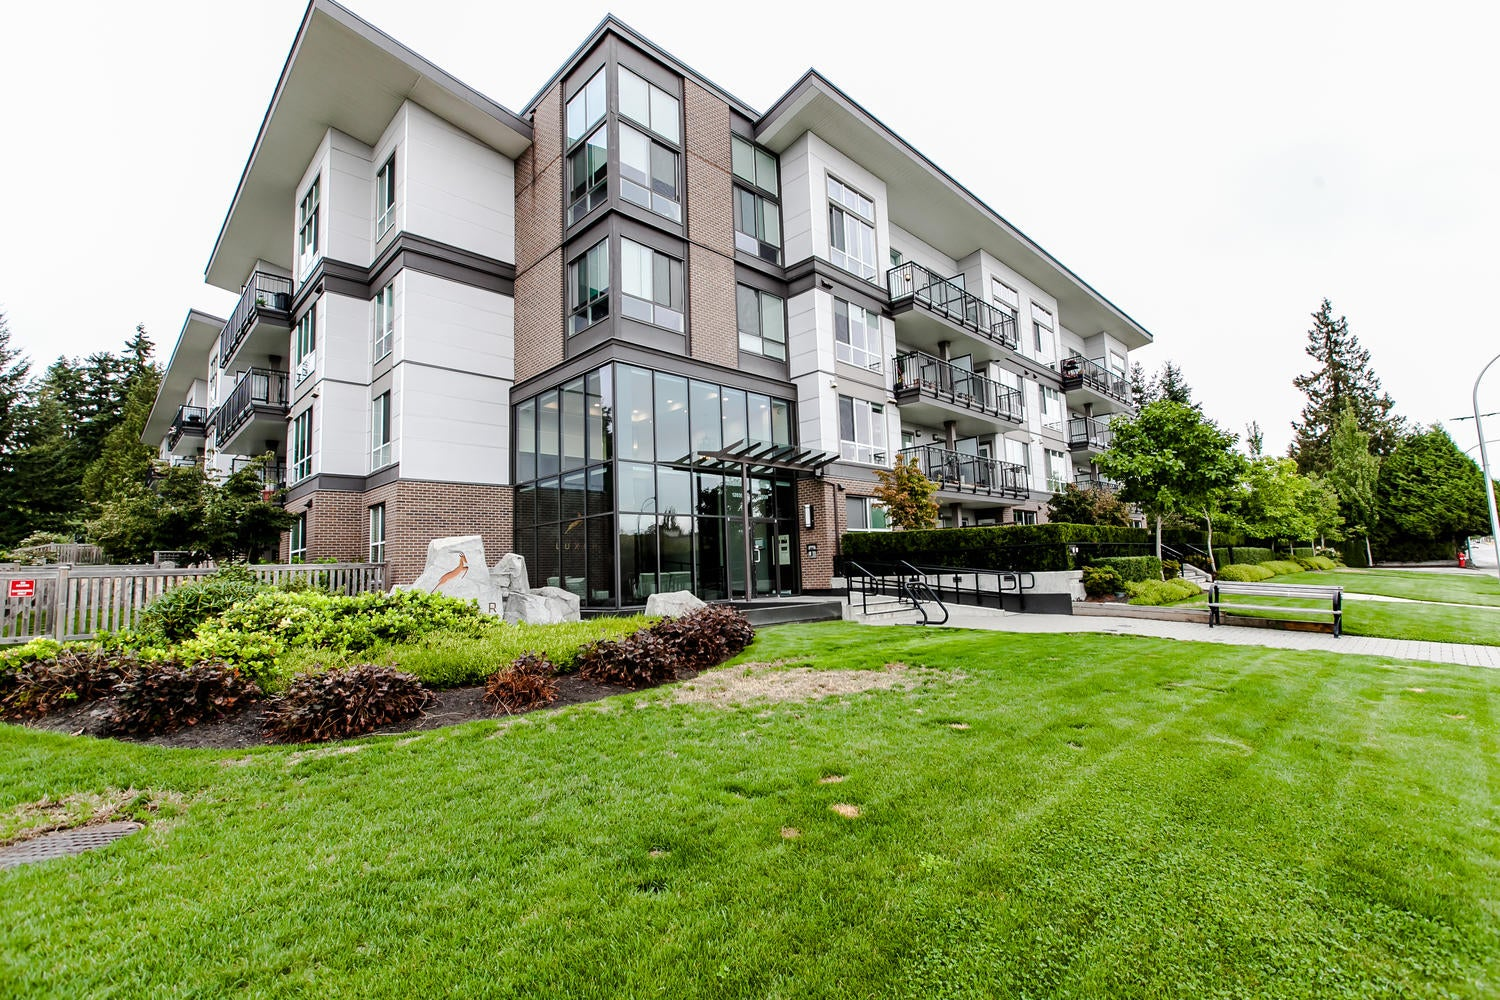 410 12039 64 AVENUE - West Newton Apartment/Condo for sale, 2 Bedrooms (R2206760) #1